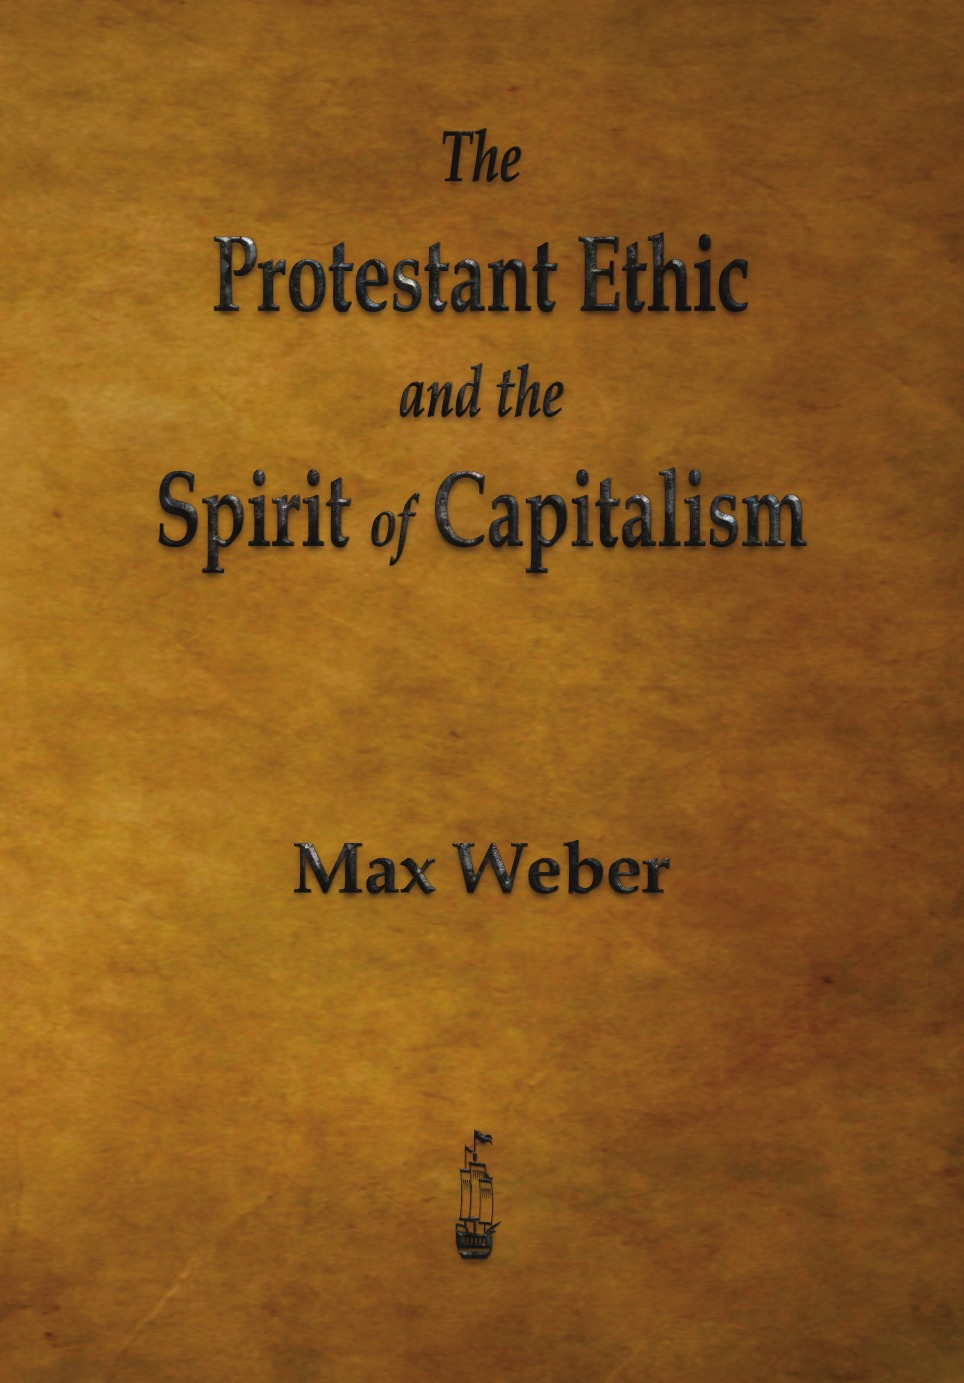 Max Weber The Protestant Ethic and the Spirit of Capitalism reinventing capitalism in the